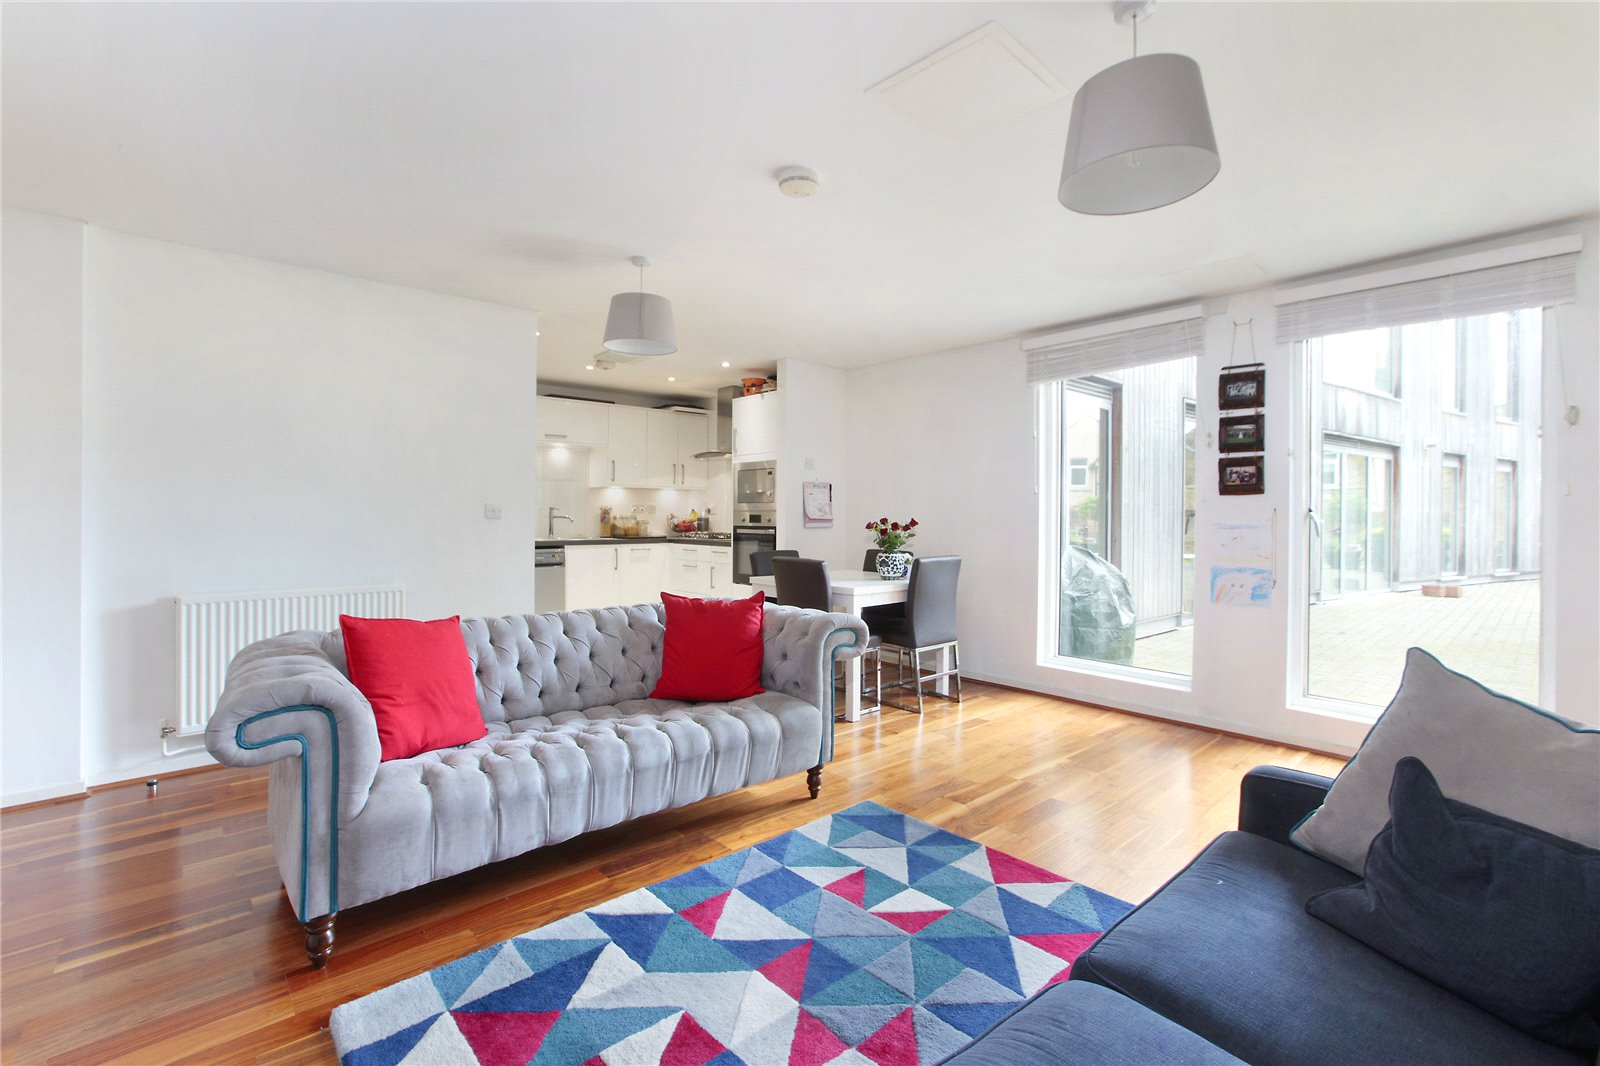 2 bedroom flat for sale in blueprint apartments 16 balham grove 2 bedroom flat for sale in blueprint apartments 16 balham grove balham sw12 london malvernweather Gallery